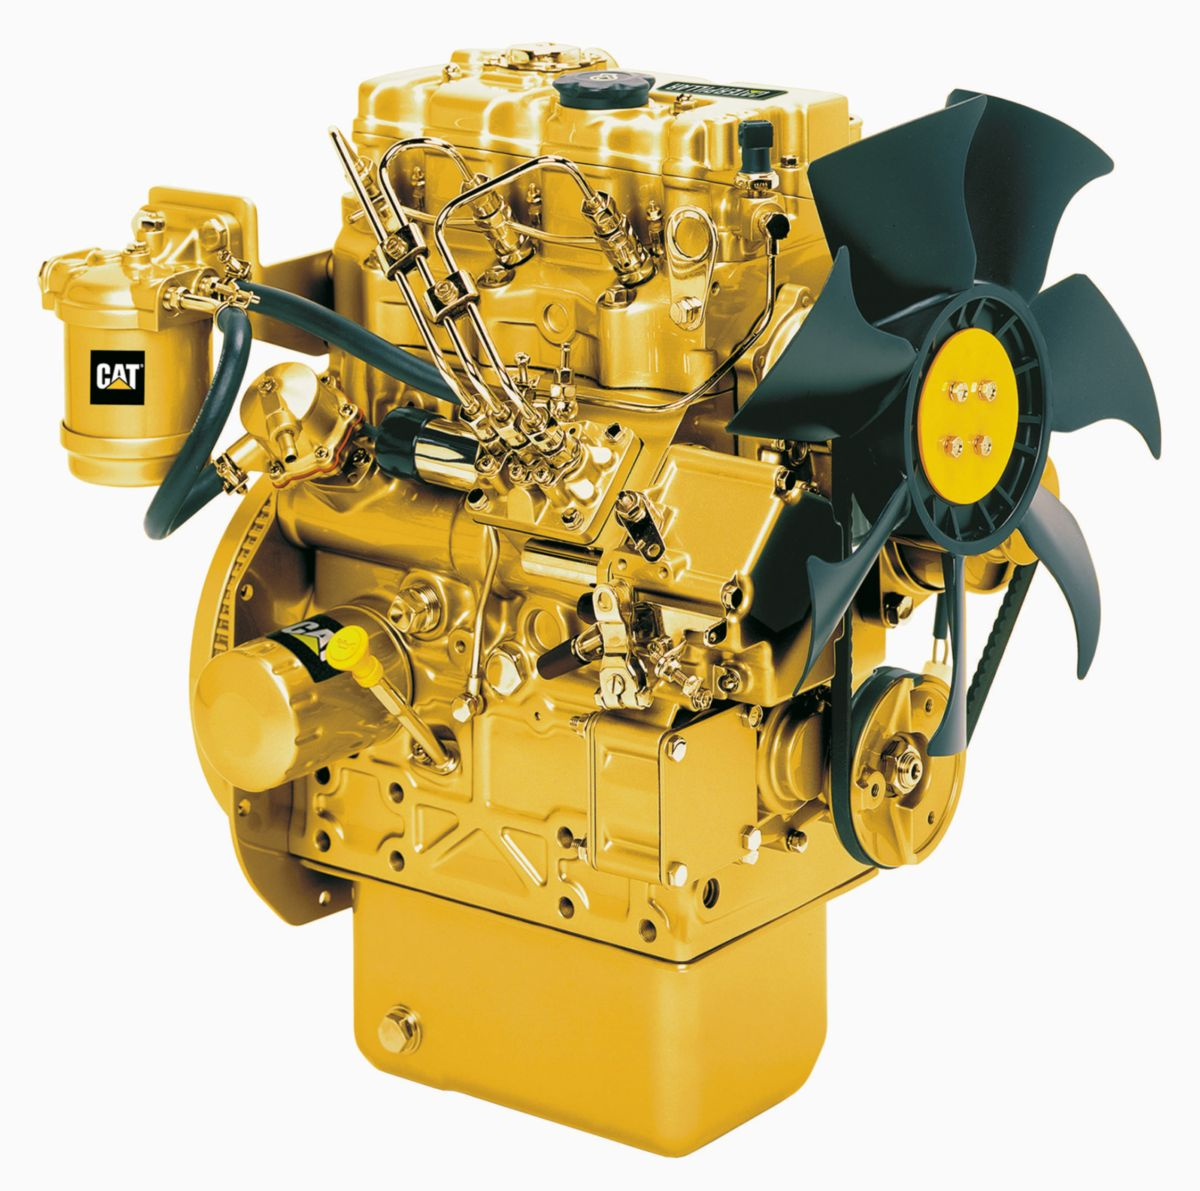 Cat® C2.2 Industrial Power Unit